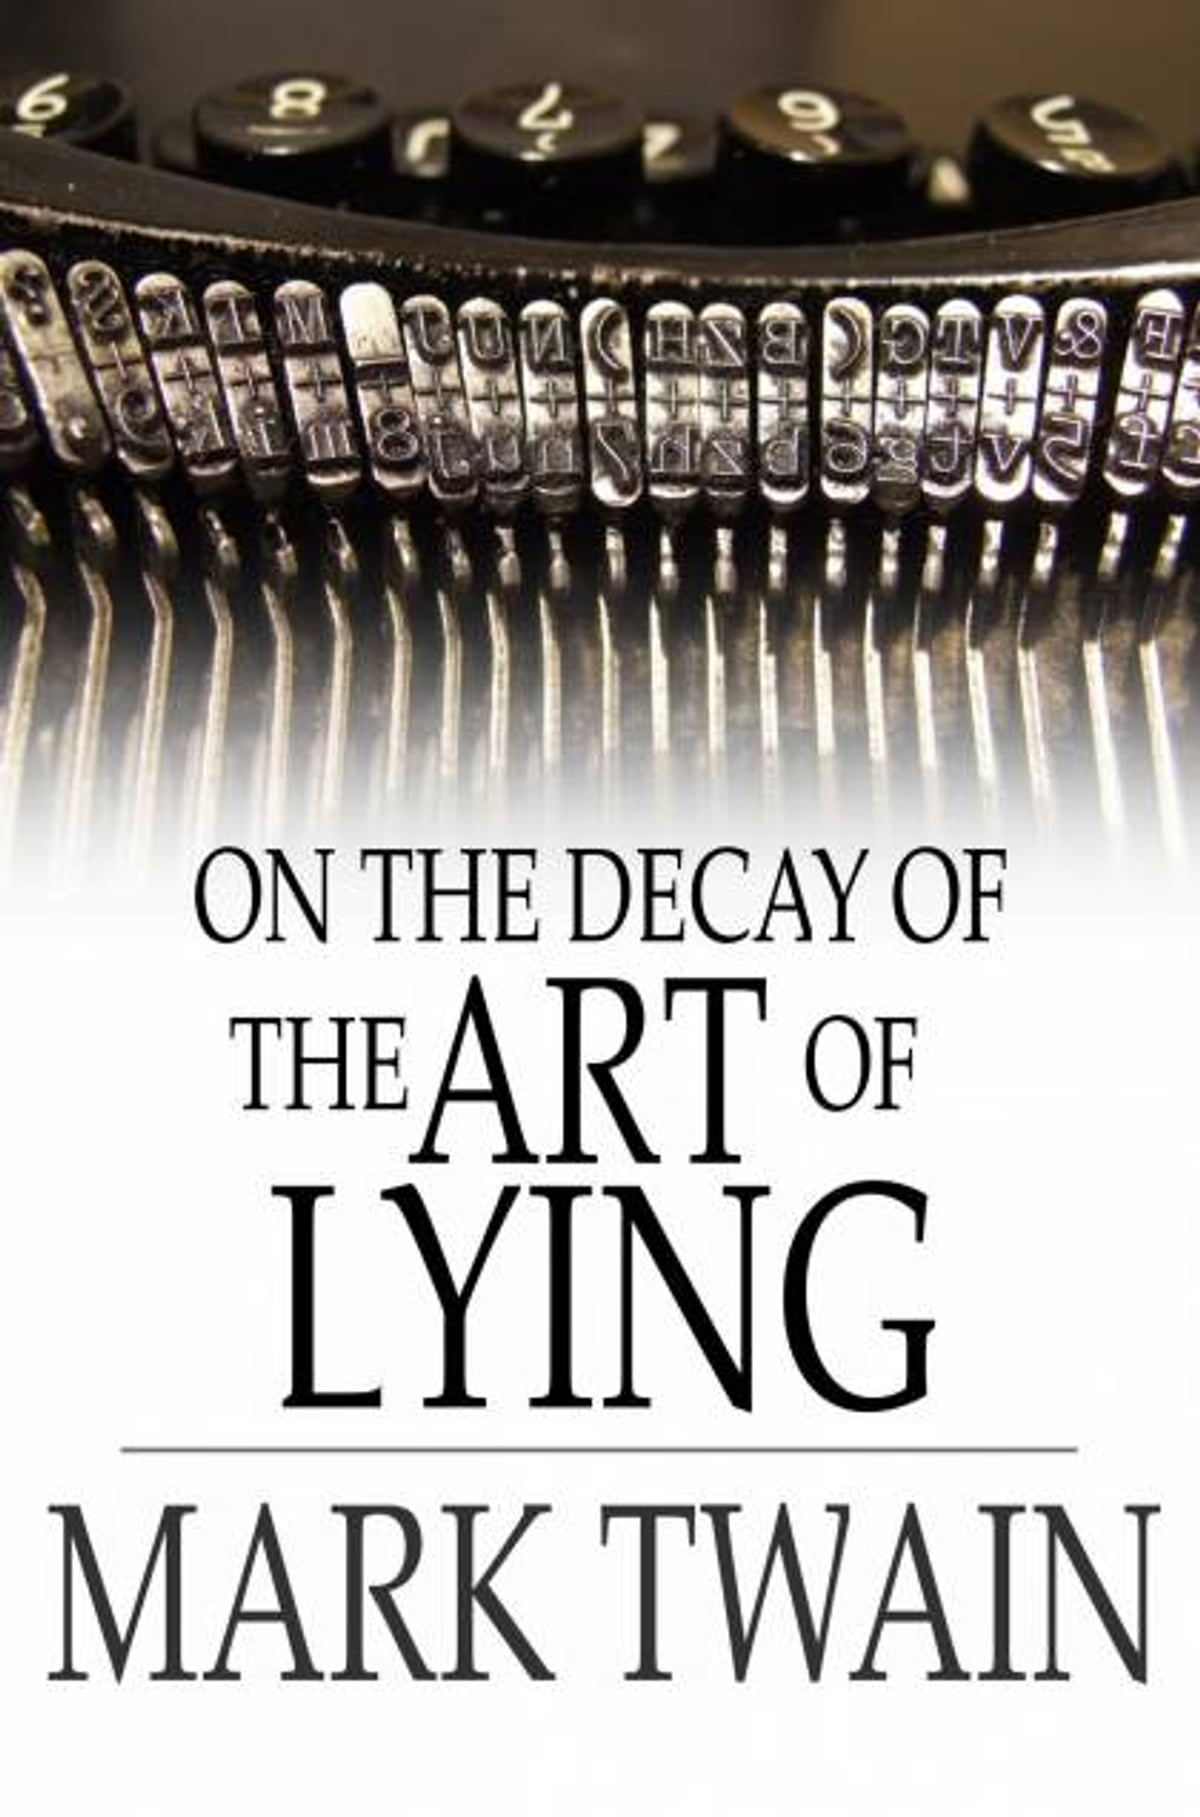 on the decay of lying The decay of lying by oscar wilde essayscentral to the decadent movement was the view that art is totally opposed to nature, in the sense both of biological nature and of the standard, or natural, norms of morality and sexual behavior (abrams, 54).